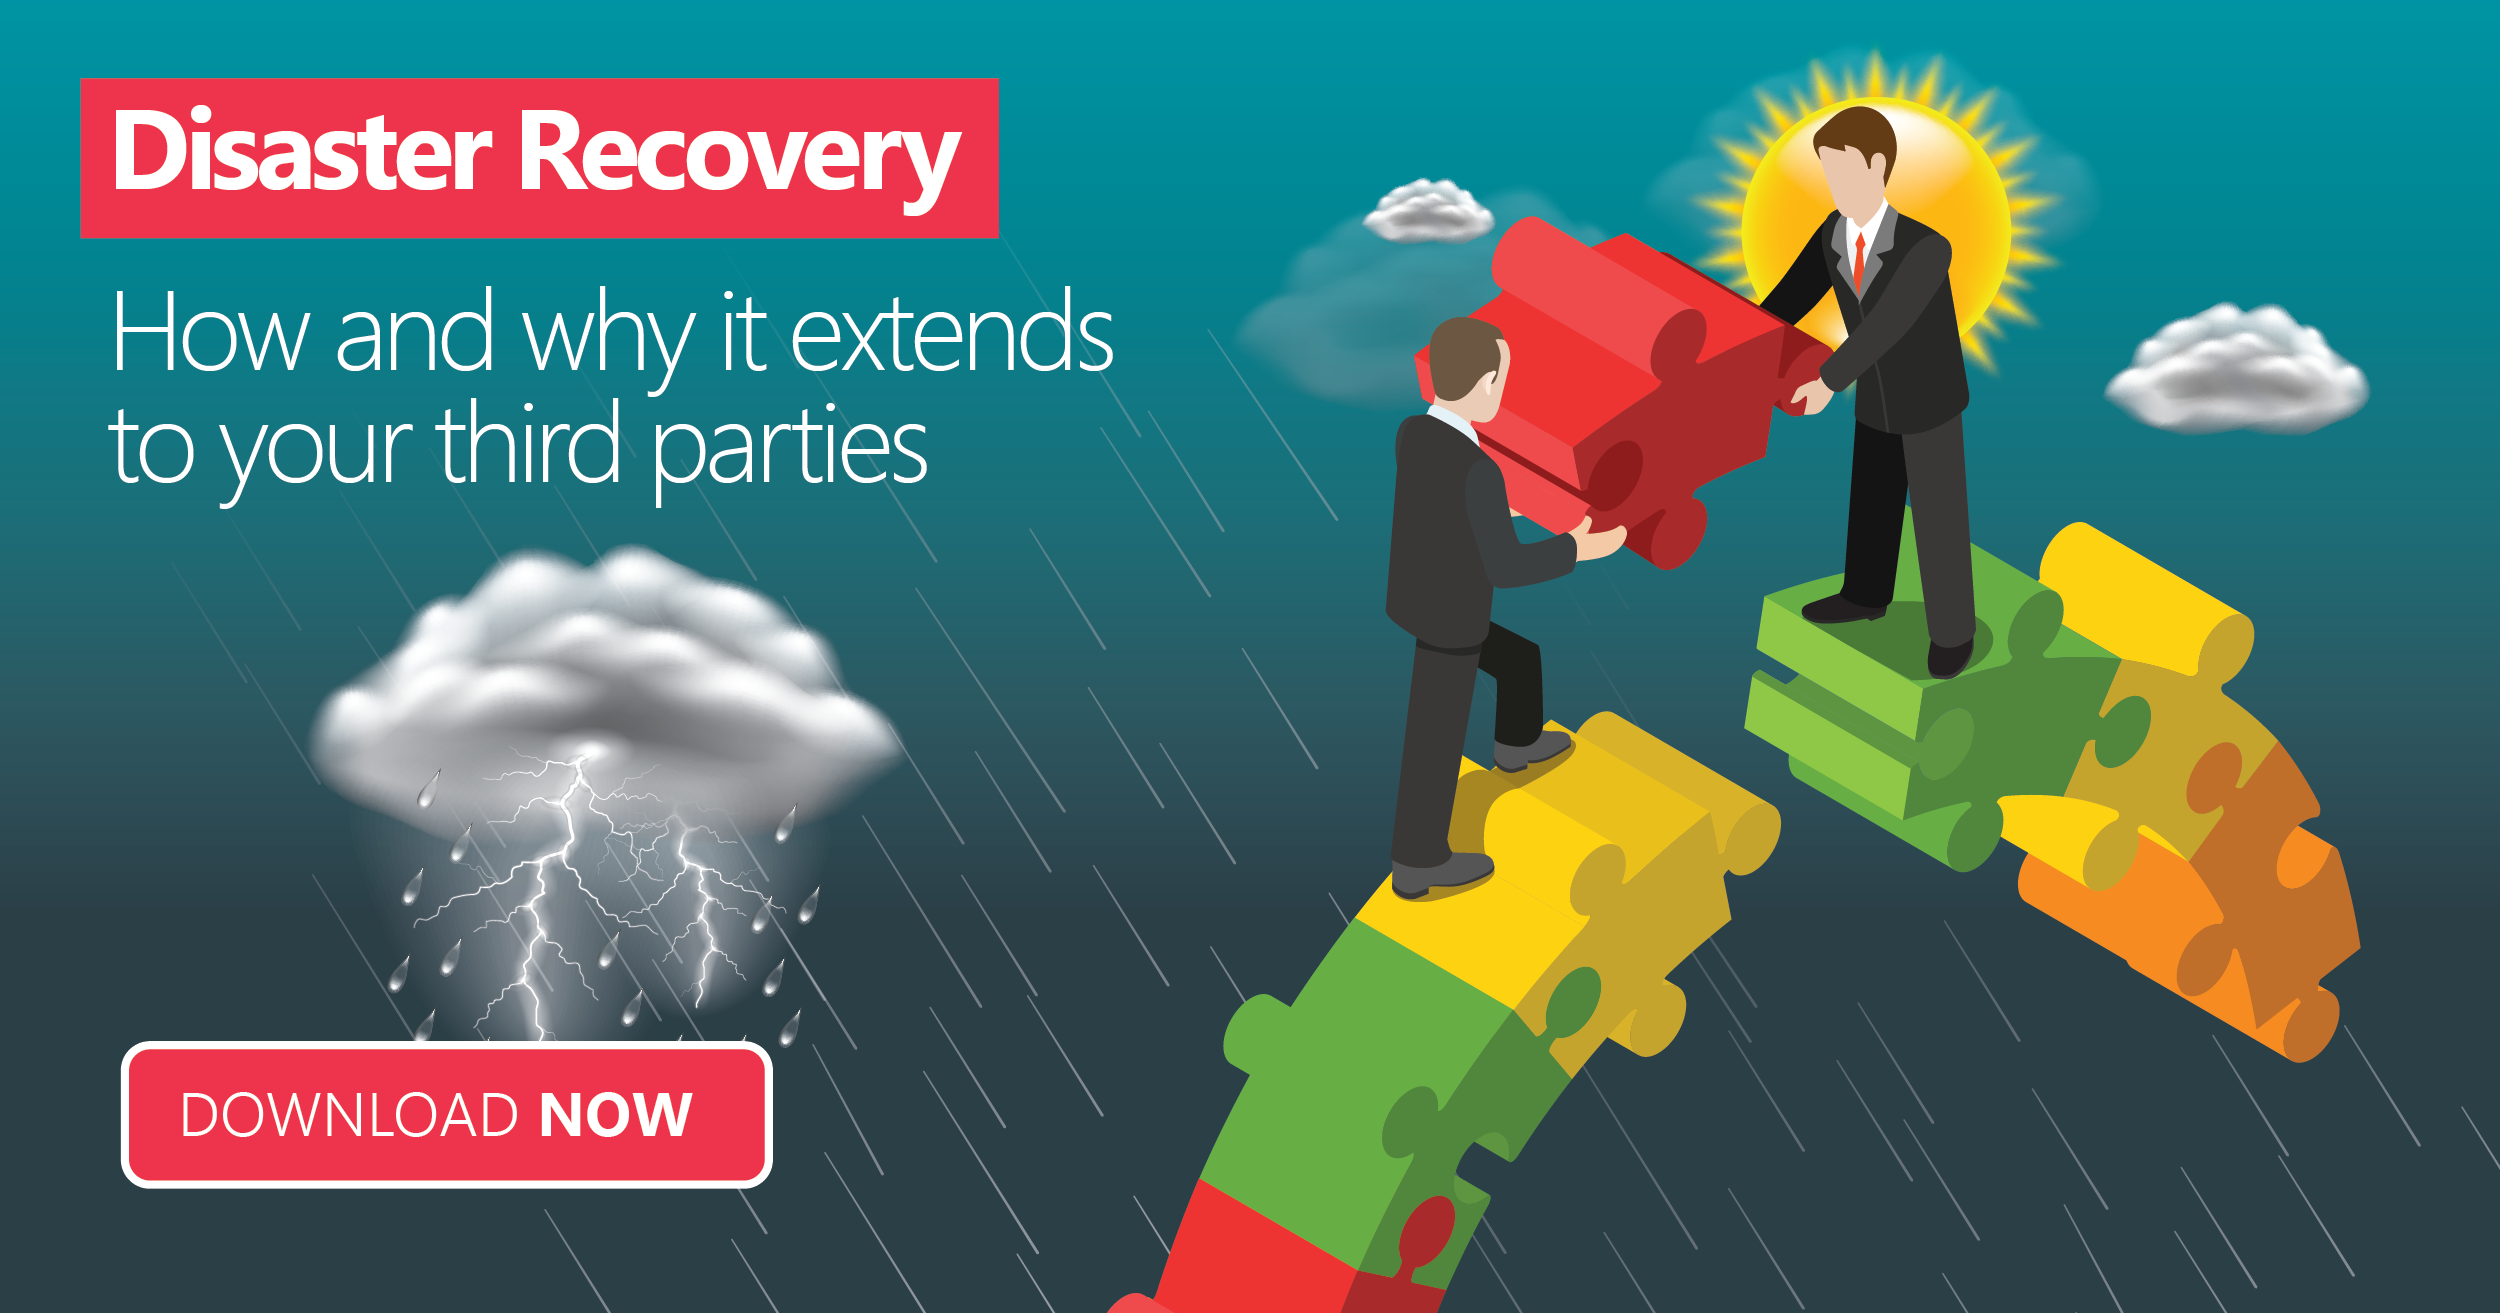 Disaster Recovery - How and why it extends to your third parties